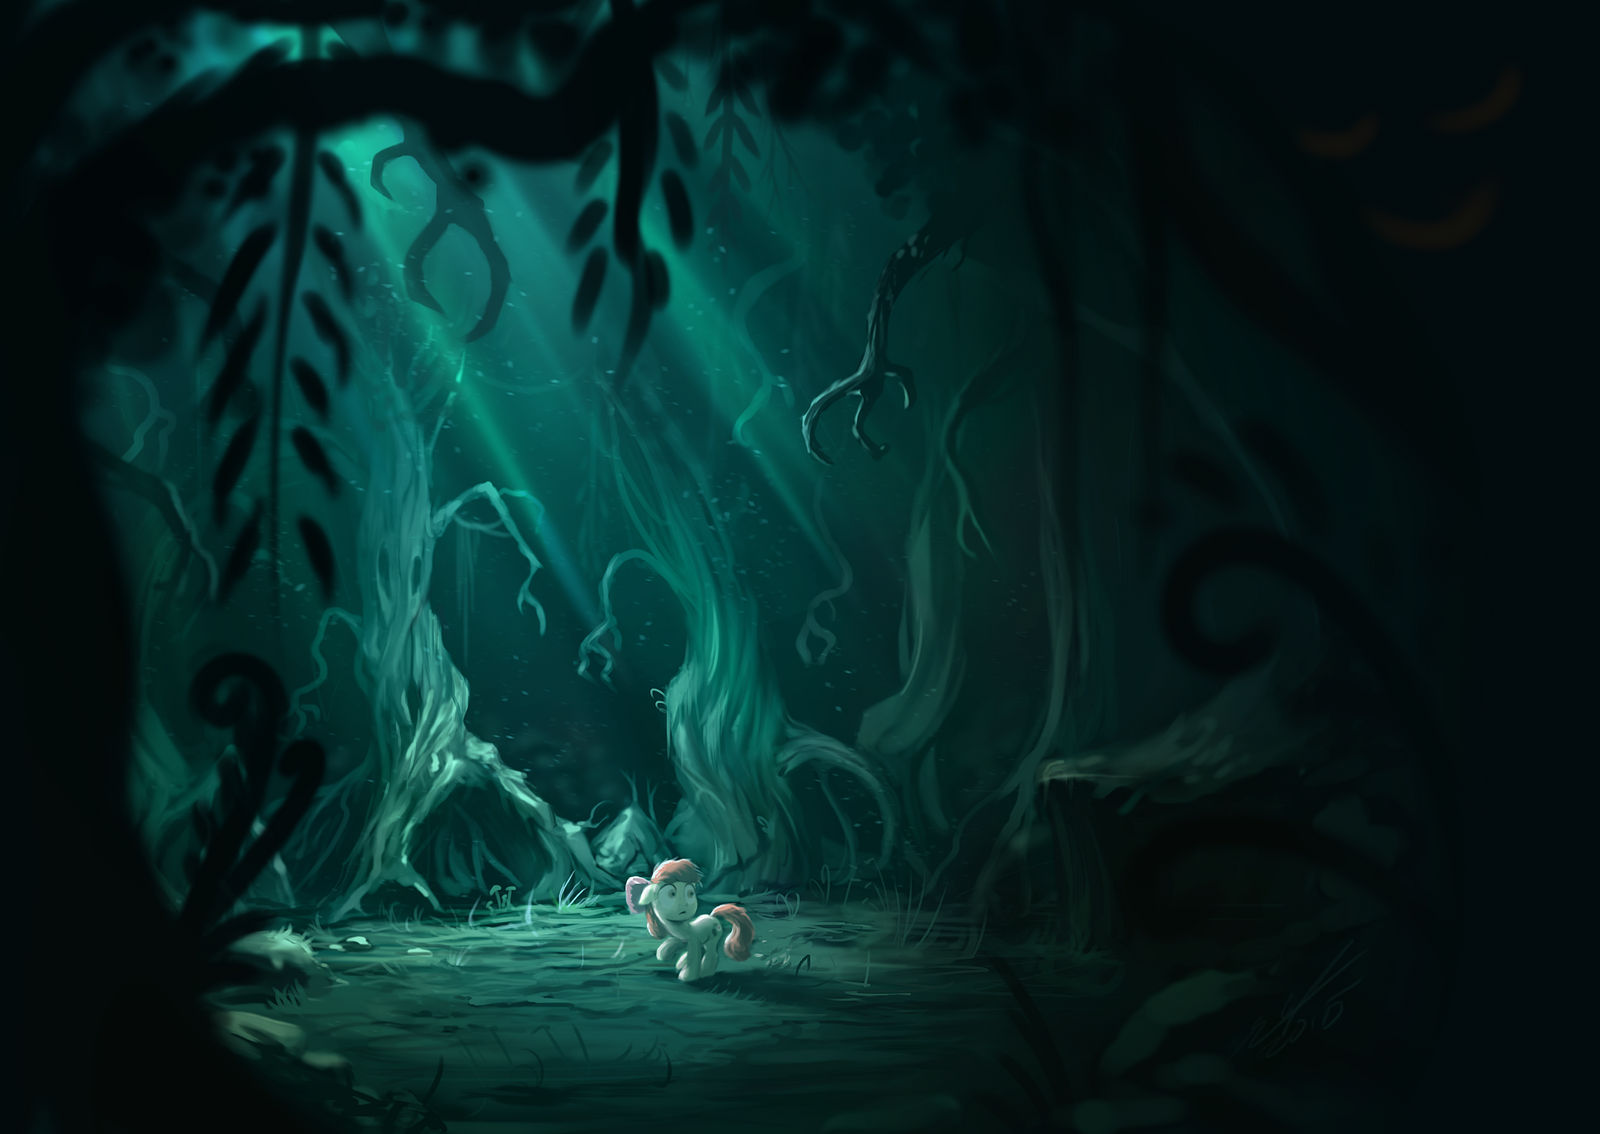 Applegloom forest by AssasinMonkey